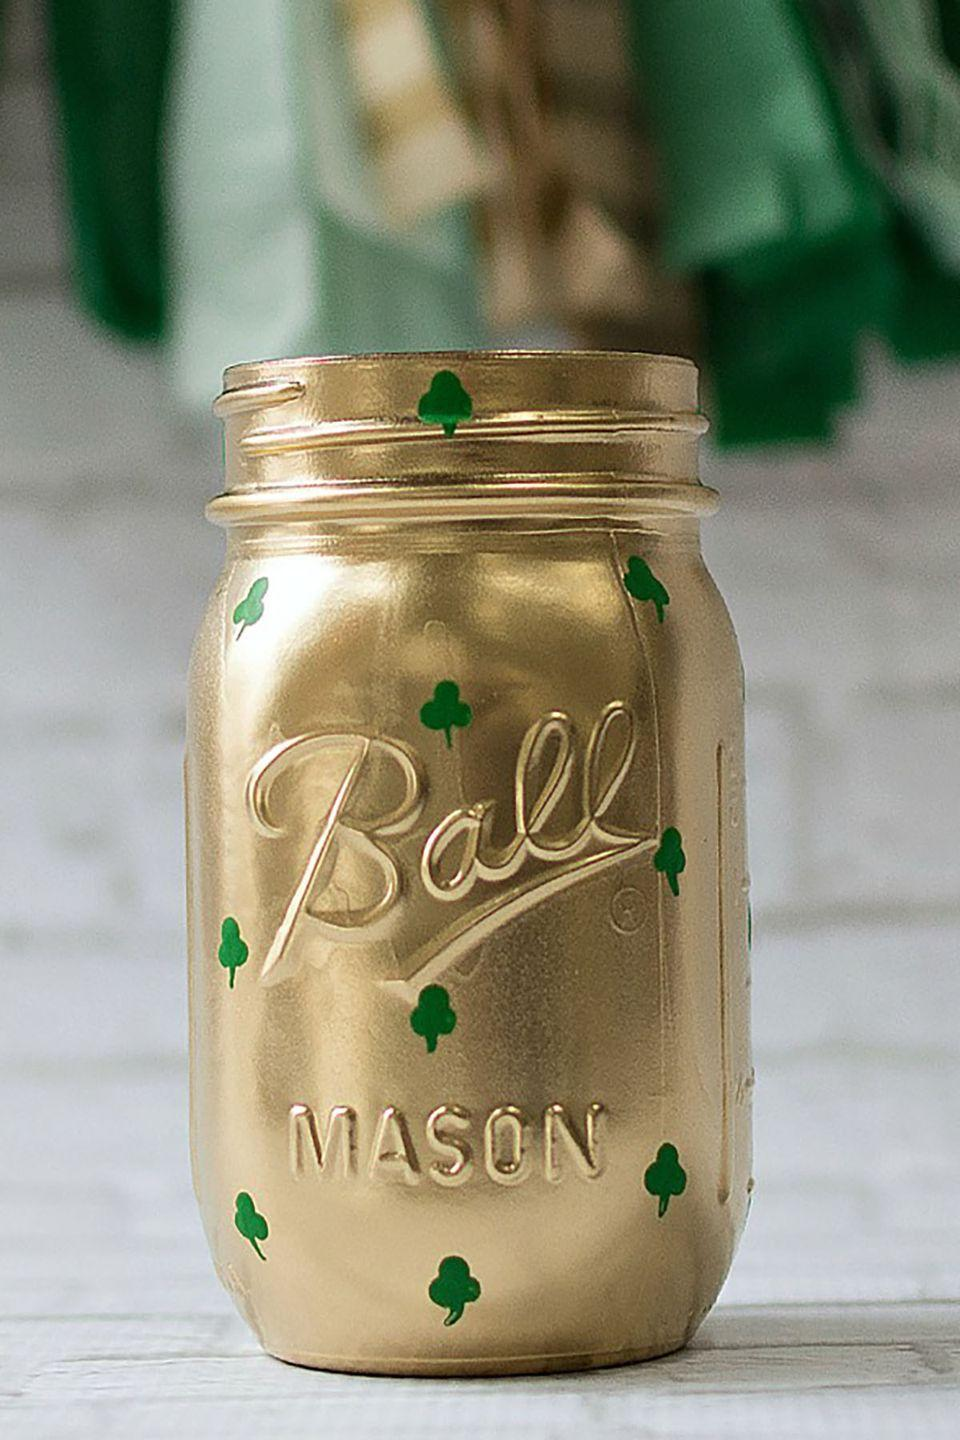 """<p>Throw a few florals (maybe even some bells of Ireland) into a gilded vase stamped with shamrocks for instant St. Patrick's Day decor.</p><p><strong>Get the tutorial at <a href=""""http://masonjarcraftslove.com/shamrock-mason-jars-2/"""" rel=""""nofollow noopener"""" target=""""_blank"""" data-ylk=""""slk:Mason Jar Crafts"""" class=""""link rapid-noclick-resp"""">Mason Jar Crafts</a>.</strong></p><p><a class=""""link rapid-noclick-resp"""" href=""""https://www.amazon.com/Ball-Mason-Jar-16-Clear-Heritage/dp/B0764L6ZR9/ref=sr_1_6?tag=syn-yahoo-20&ascsubtag=%5Bartid%7C10050.g.4036%5Bsrc%7Cyahoo-us"""" rel=""""nofollow noopener"""" target=""""_blank"""" data-ylk=""""slk:SHOP MASON JARS"""">SHOP MASON JARS</a></p>"""